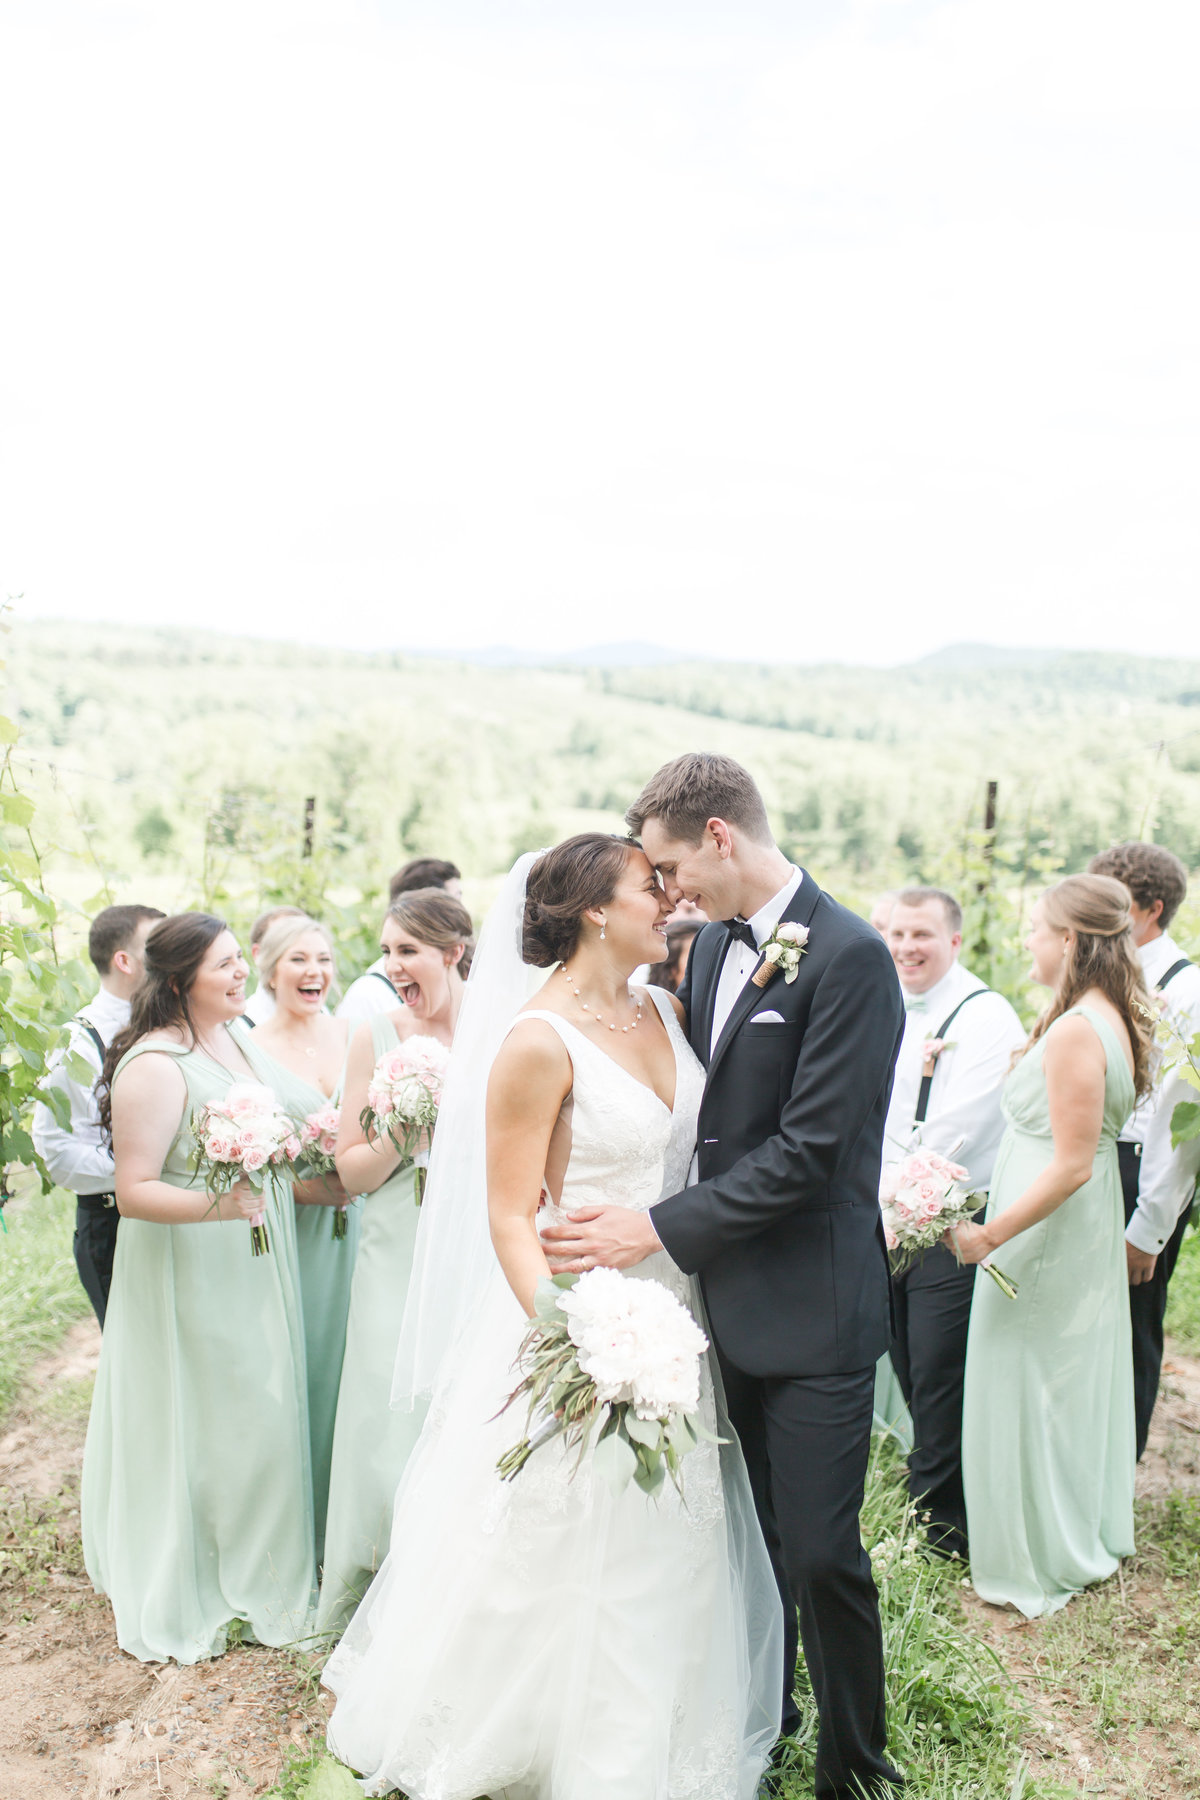 HYP_Kristina_and_Benedikt_Wedding_0062